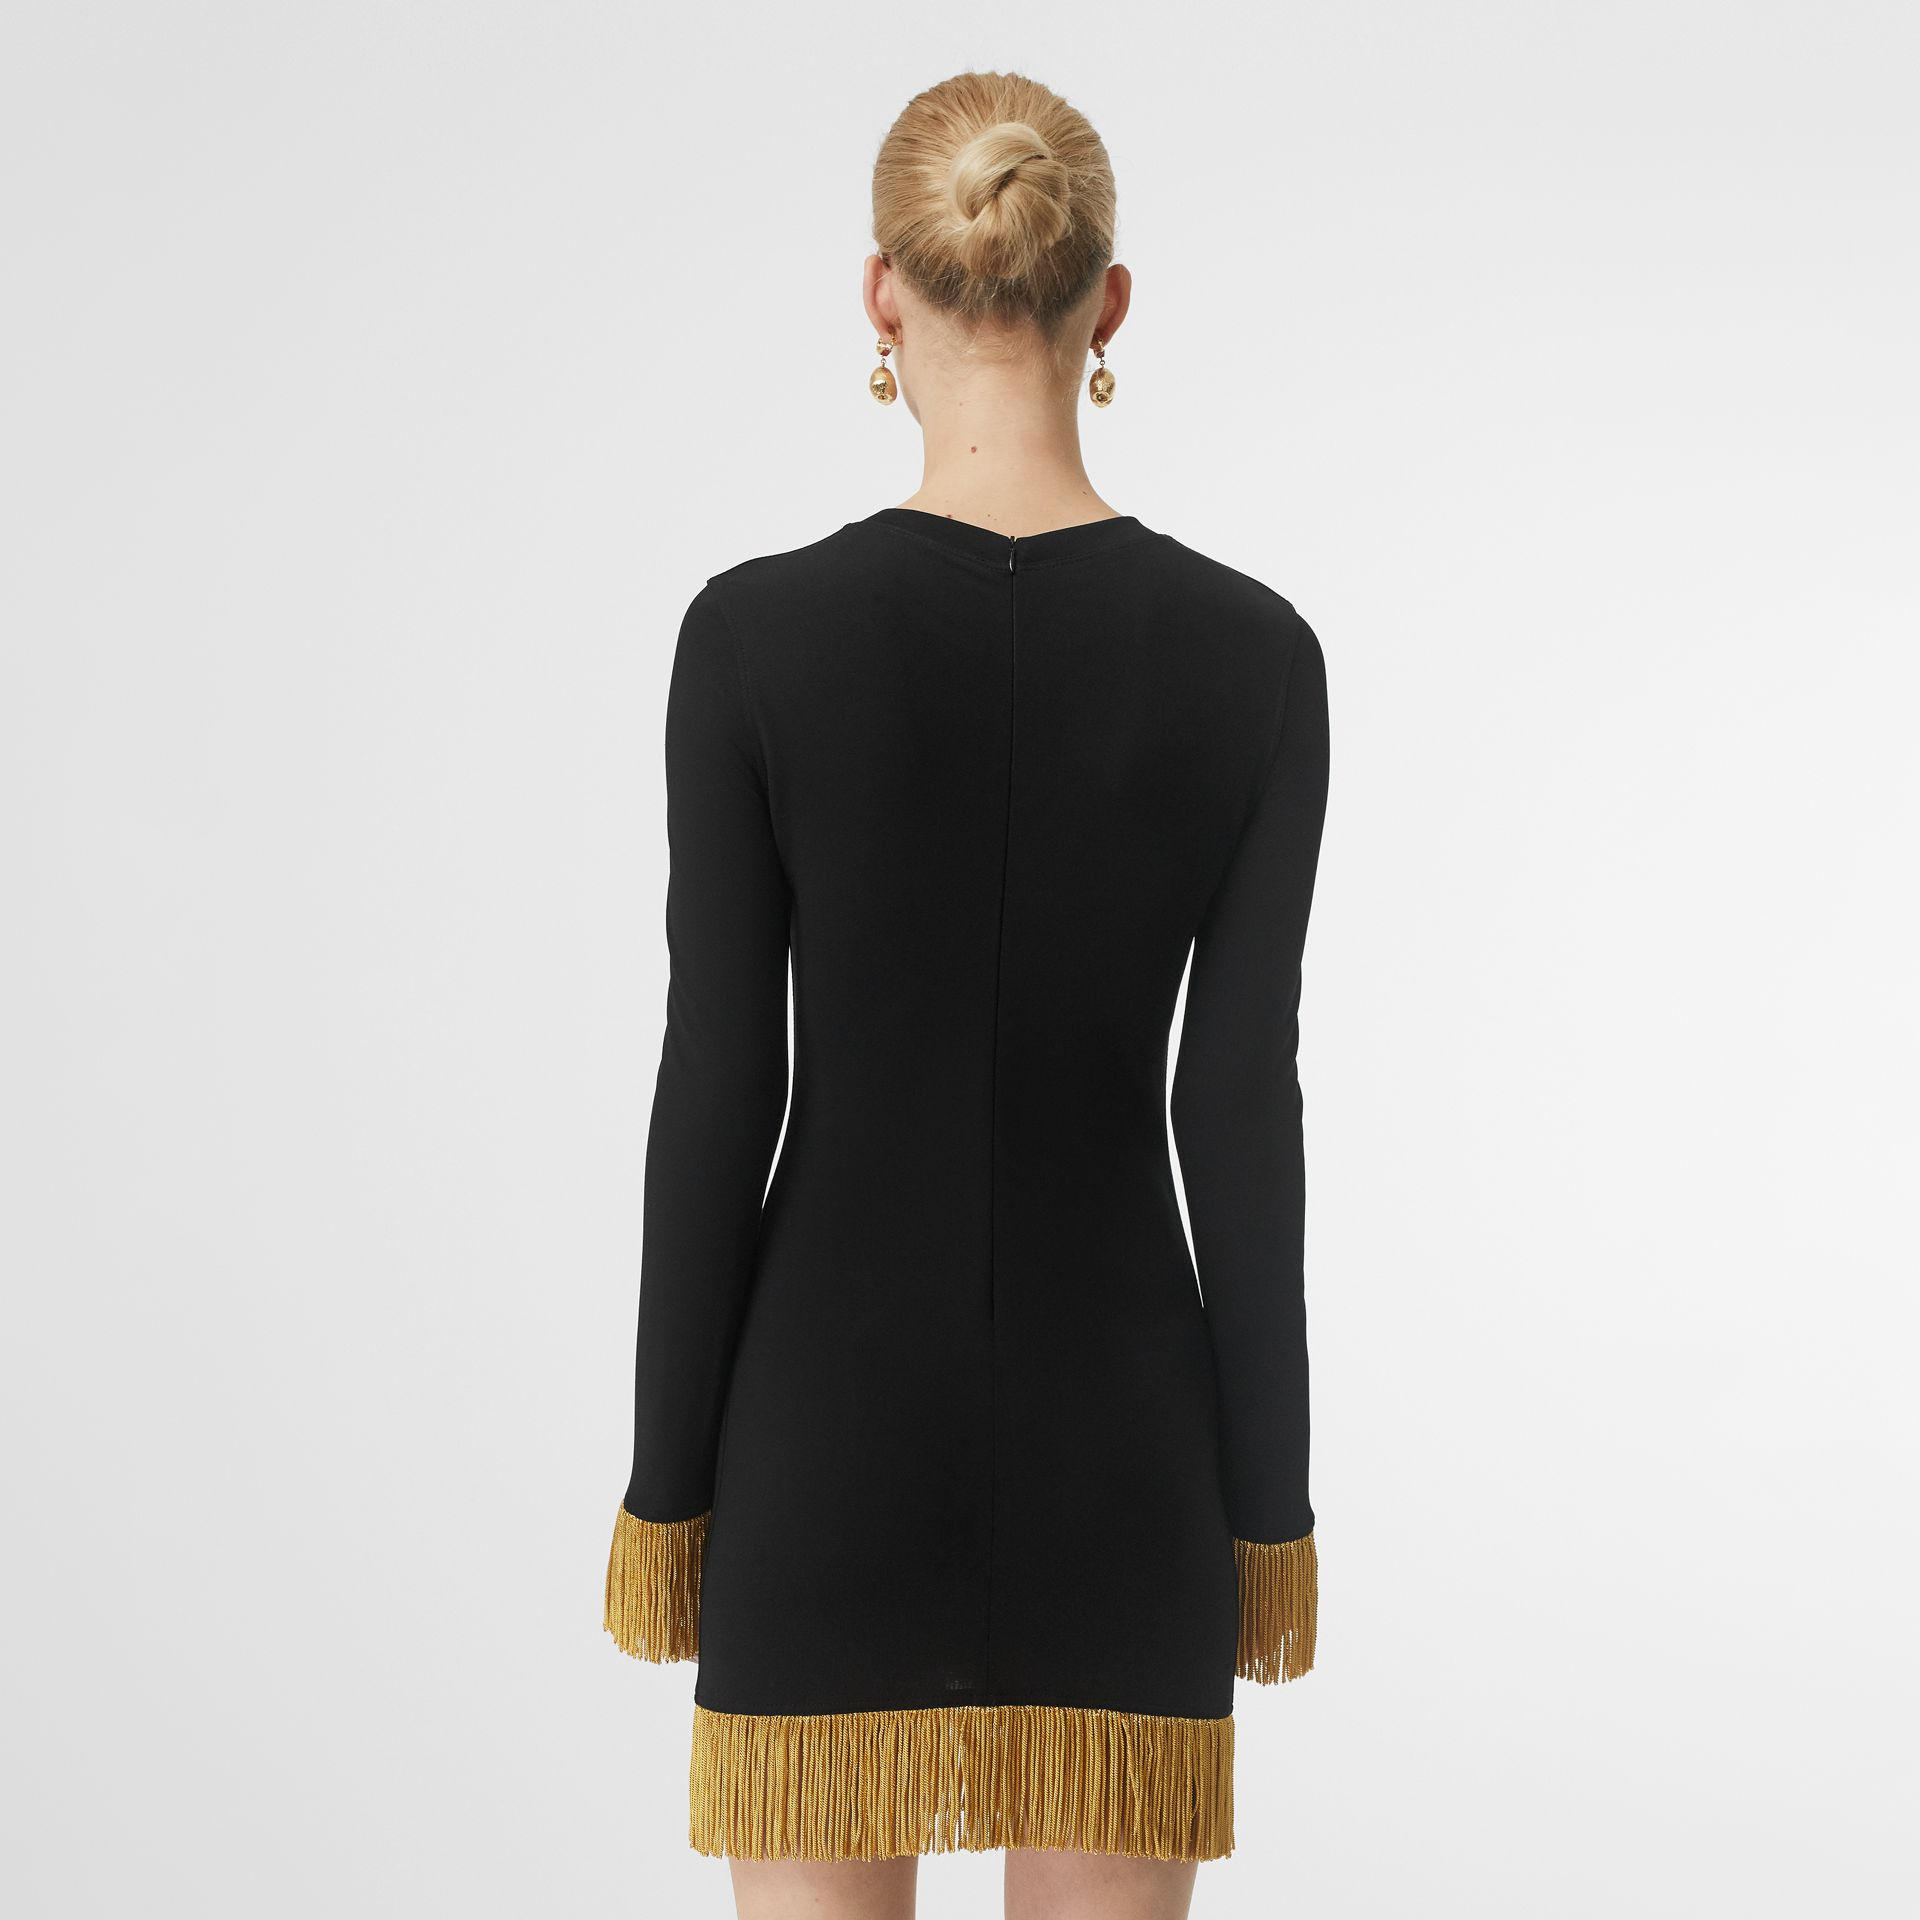 Metallic Fringe Detail Stretch Jersey Dress in Black - Women | Burberry - gallery image 2